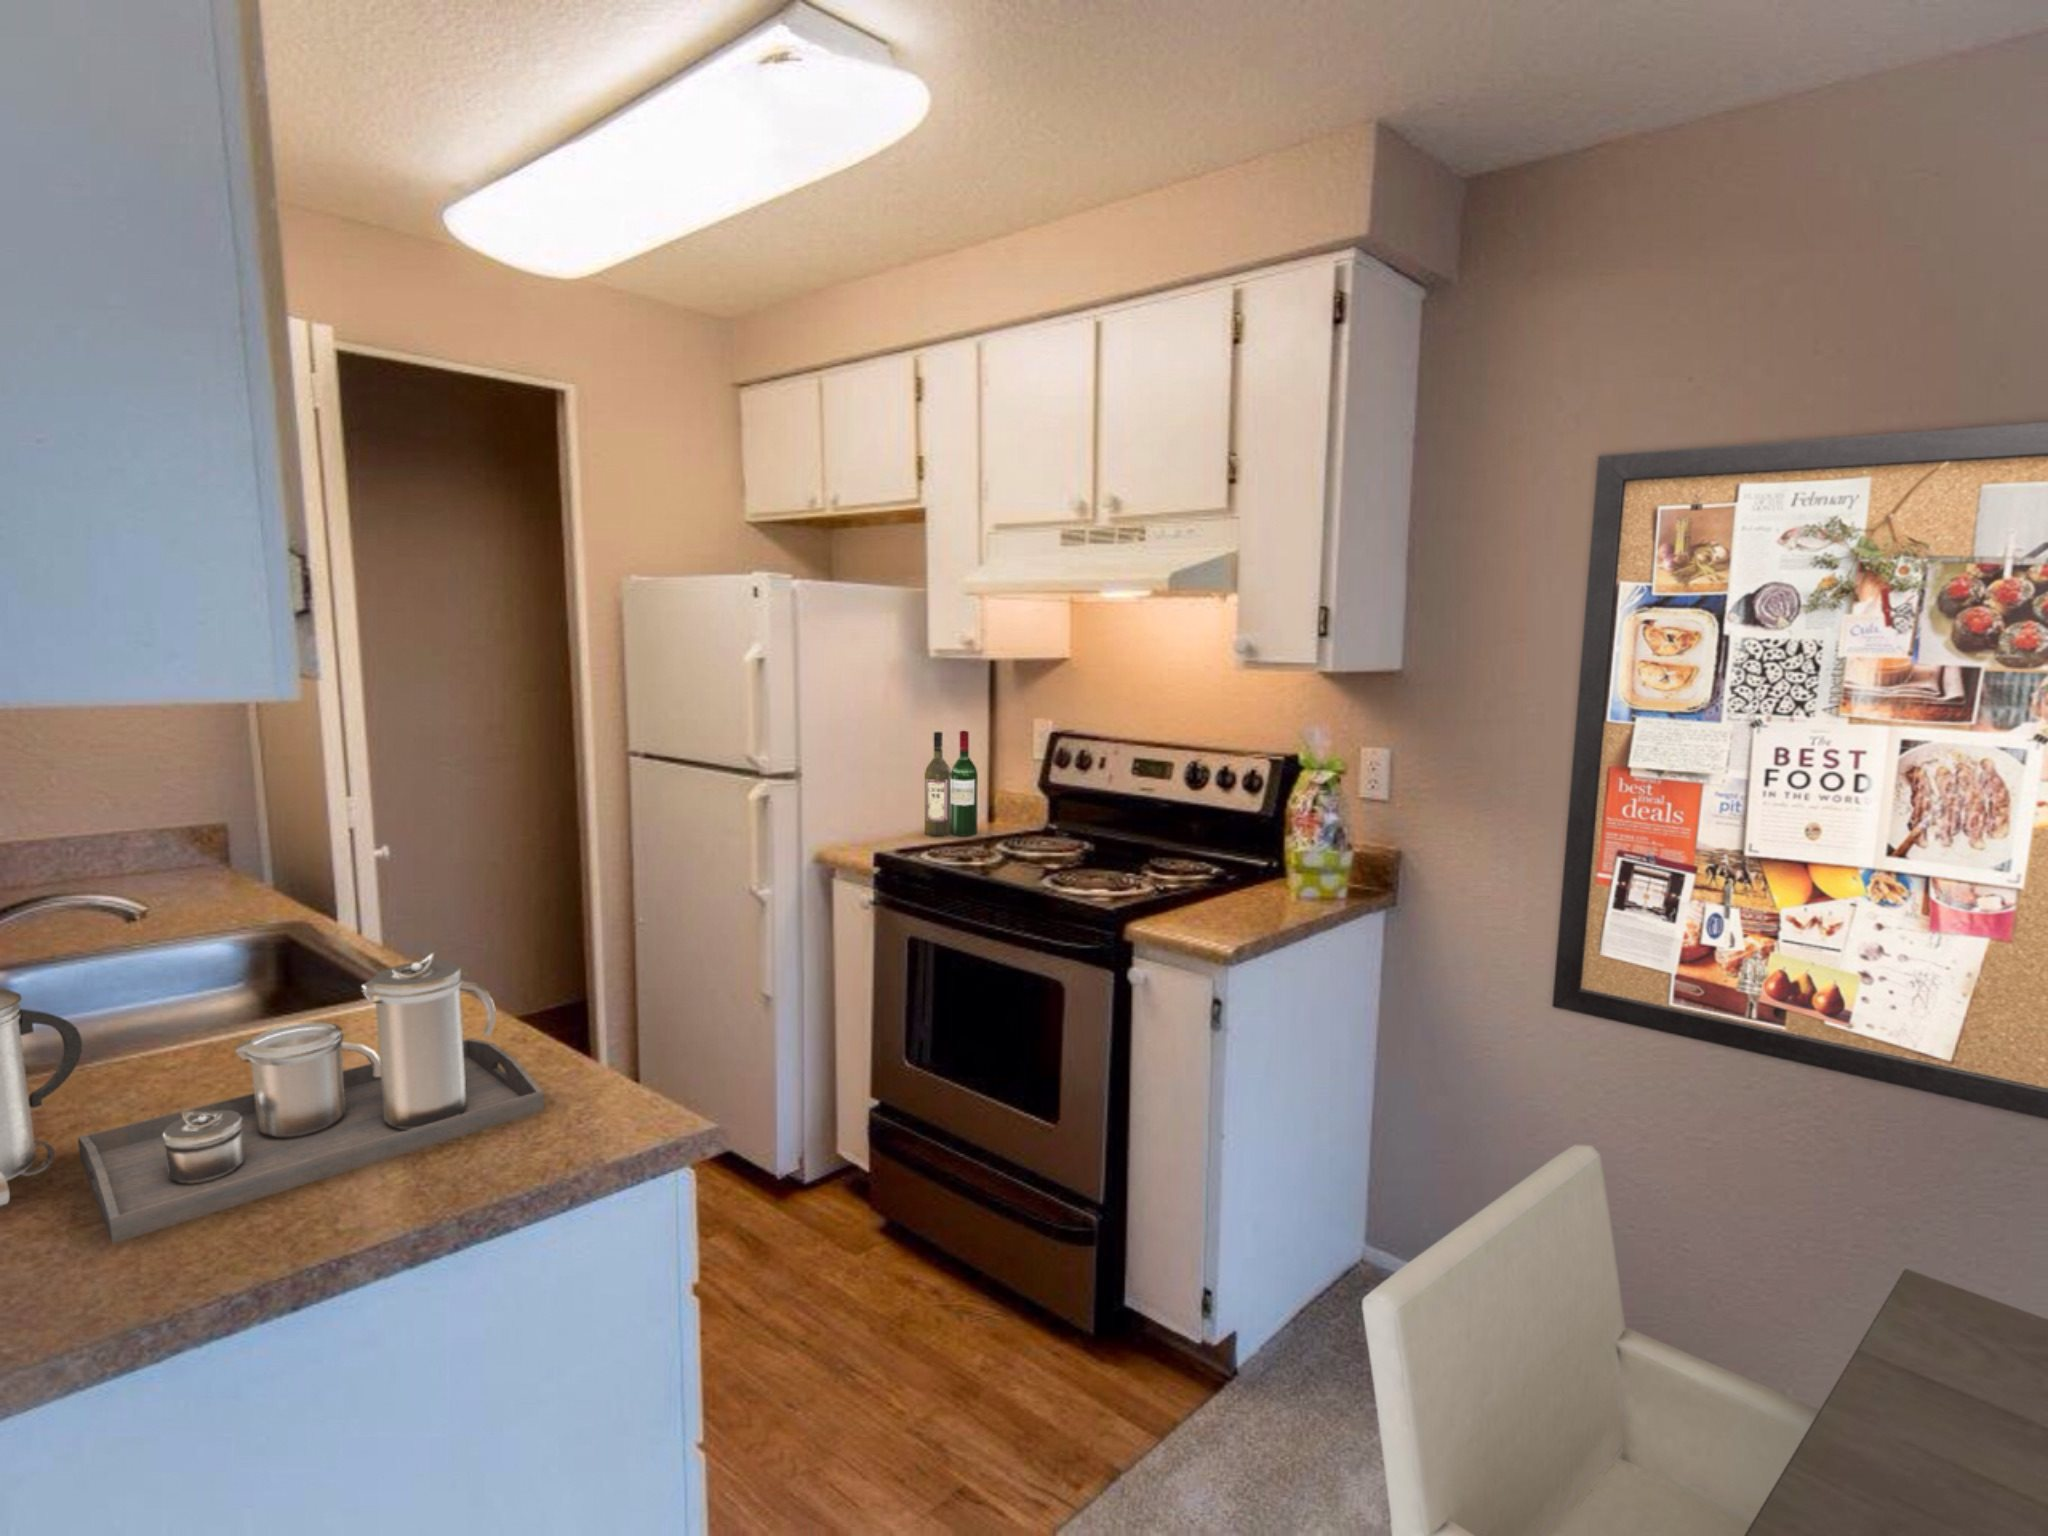 Sunstone Parc 1x1 Apartment Kitchen